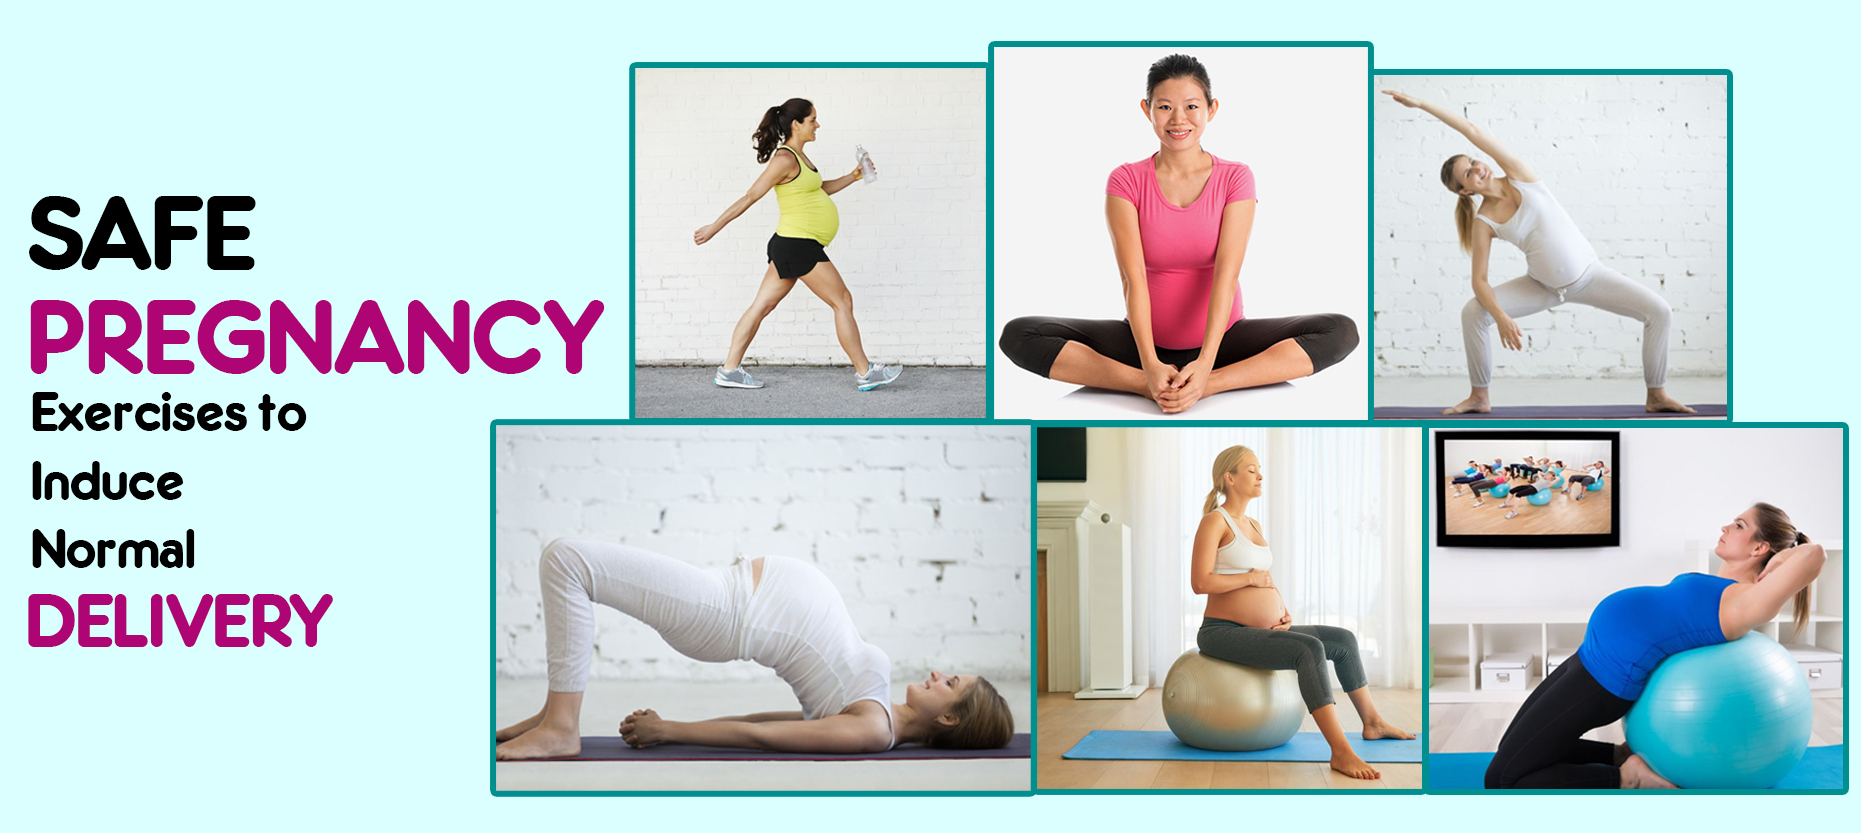 Safe Pregnancy Exercises to Induce Normal Delivery